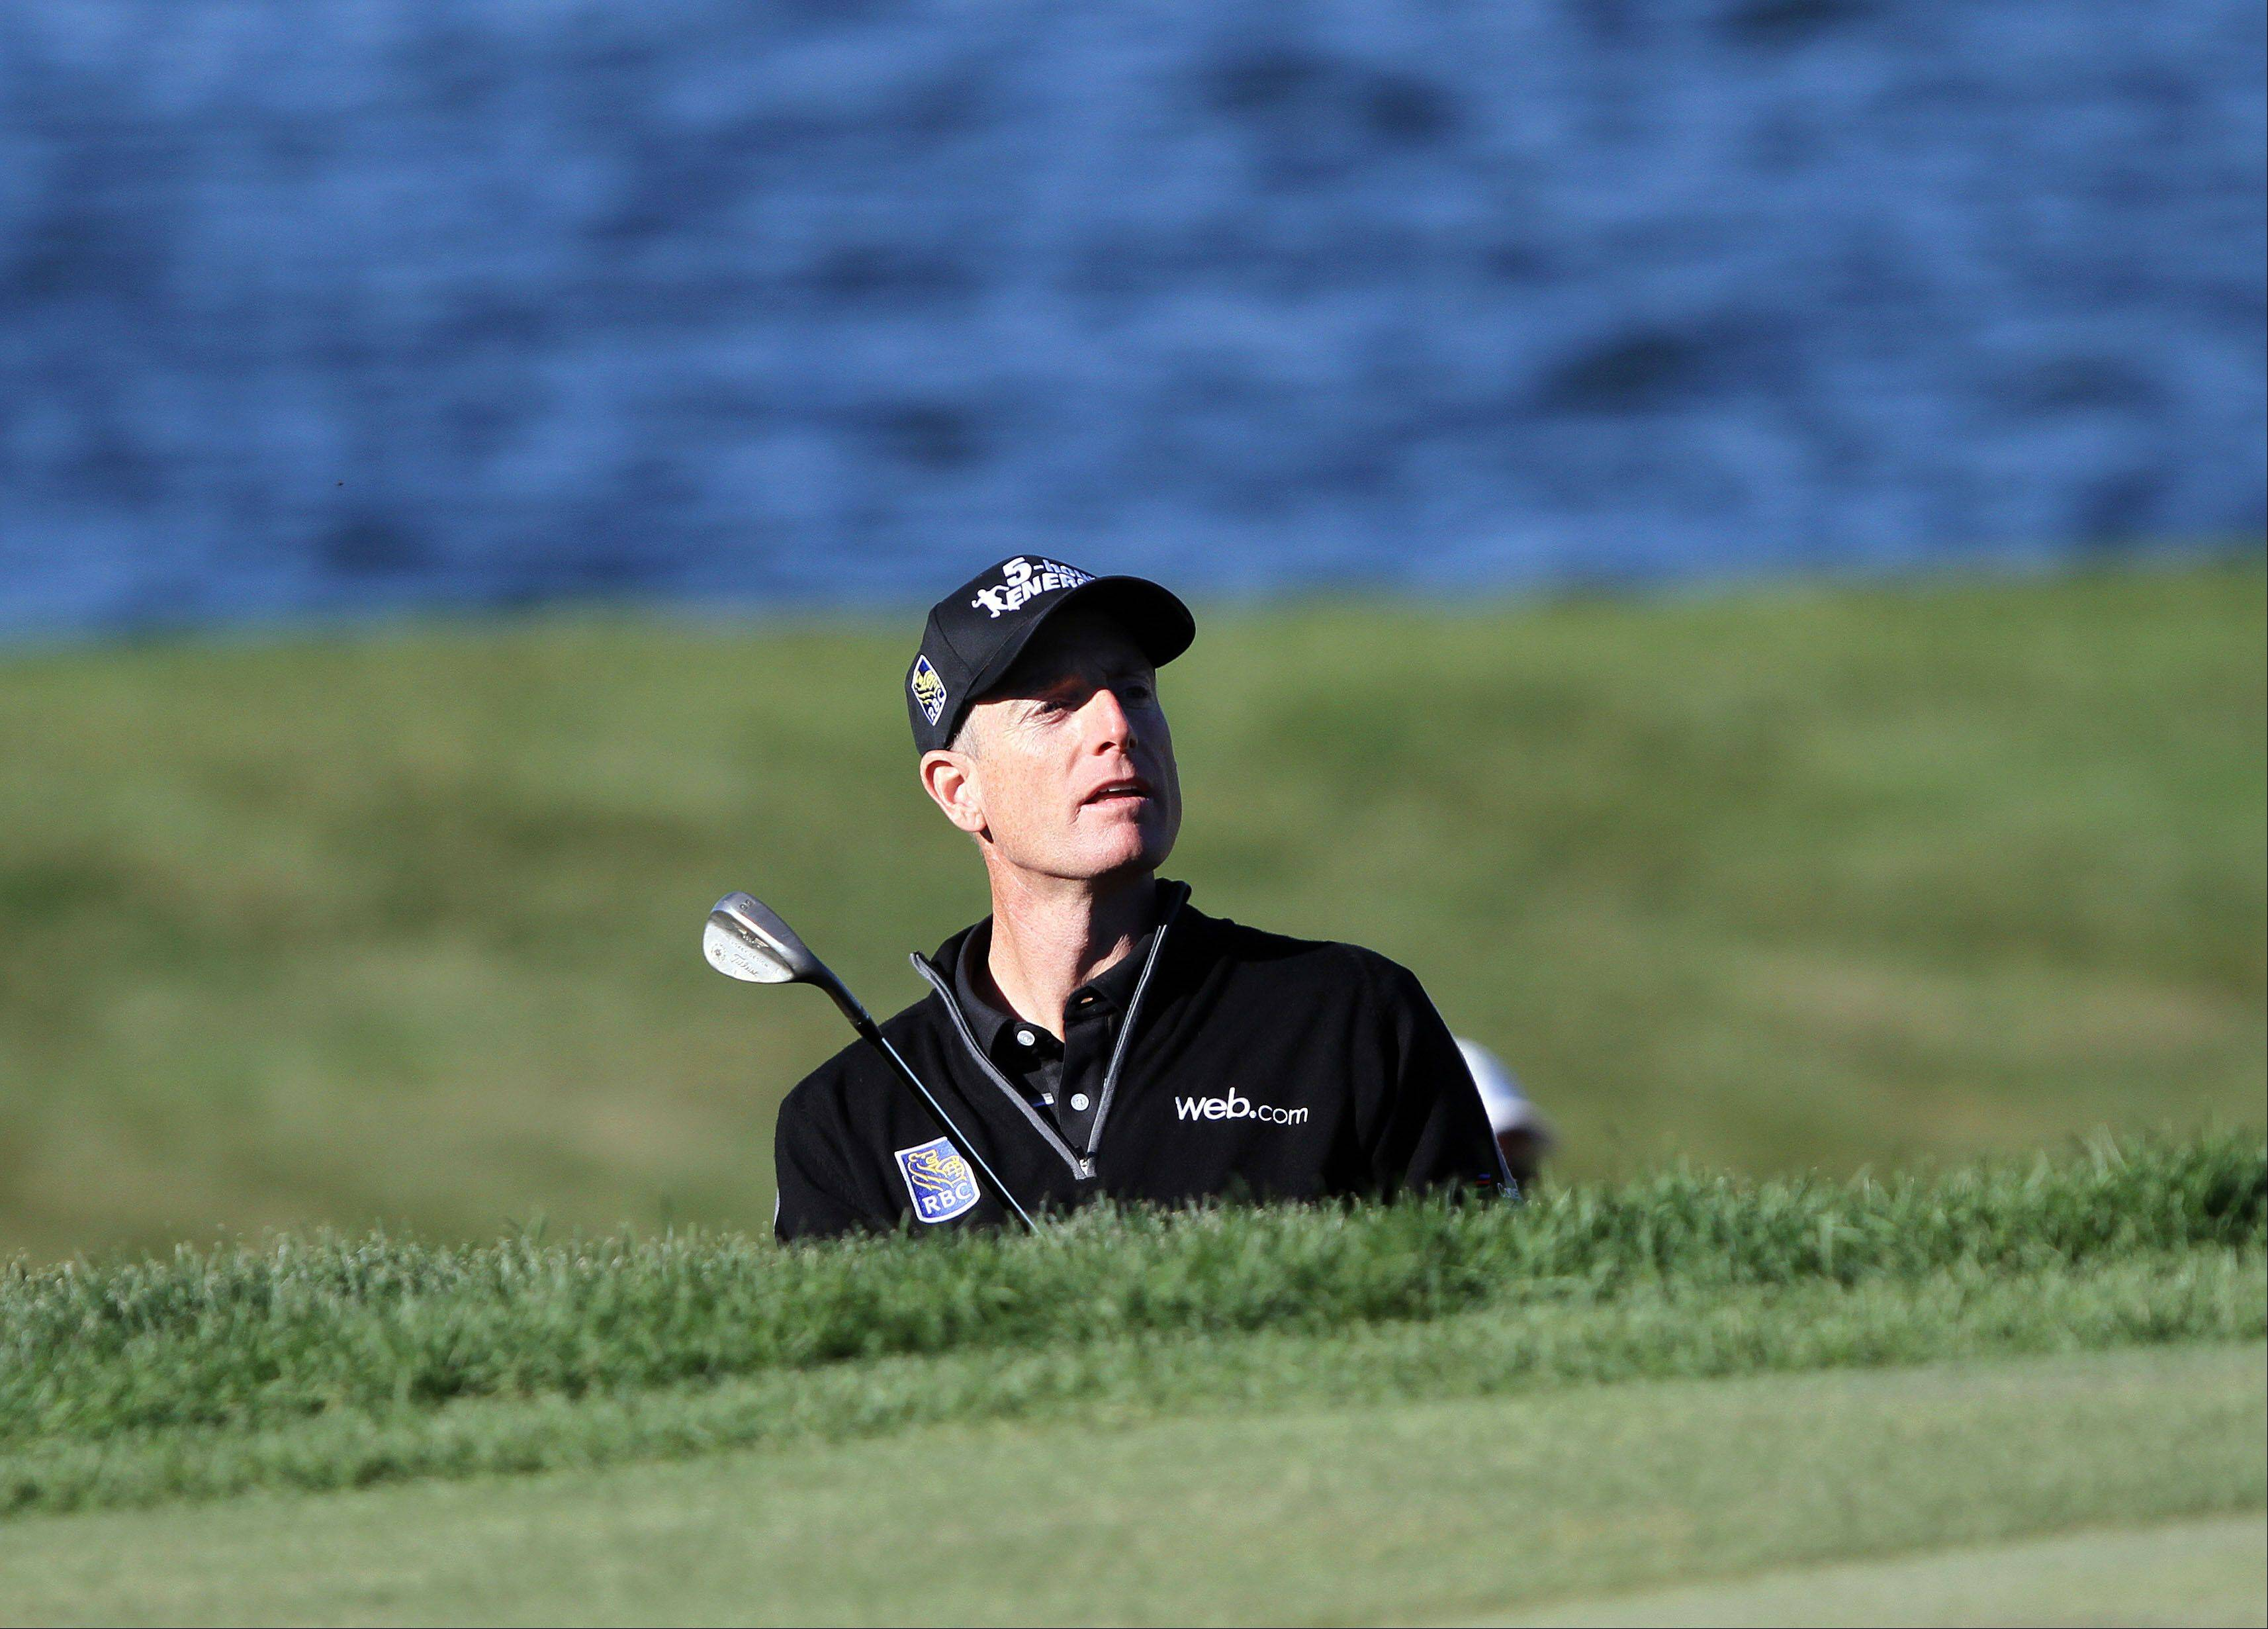 Jim Furyk watches his chip shot to the 8th green.